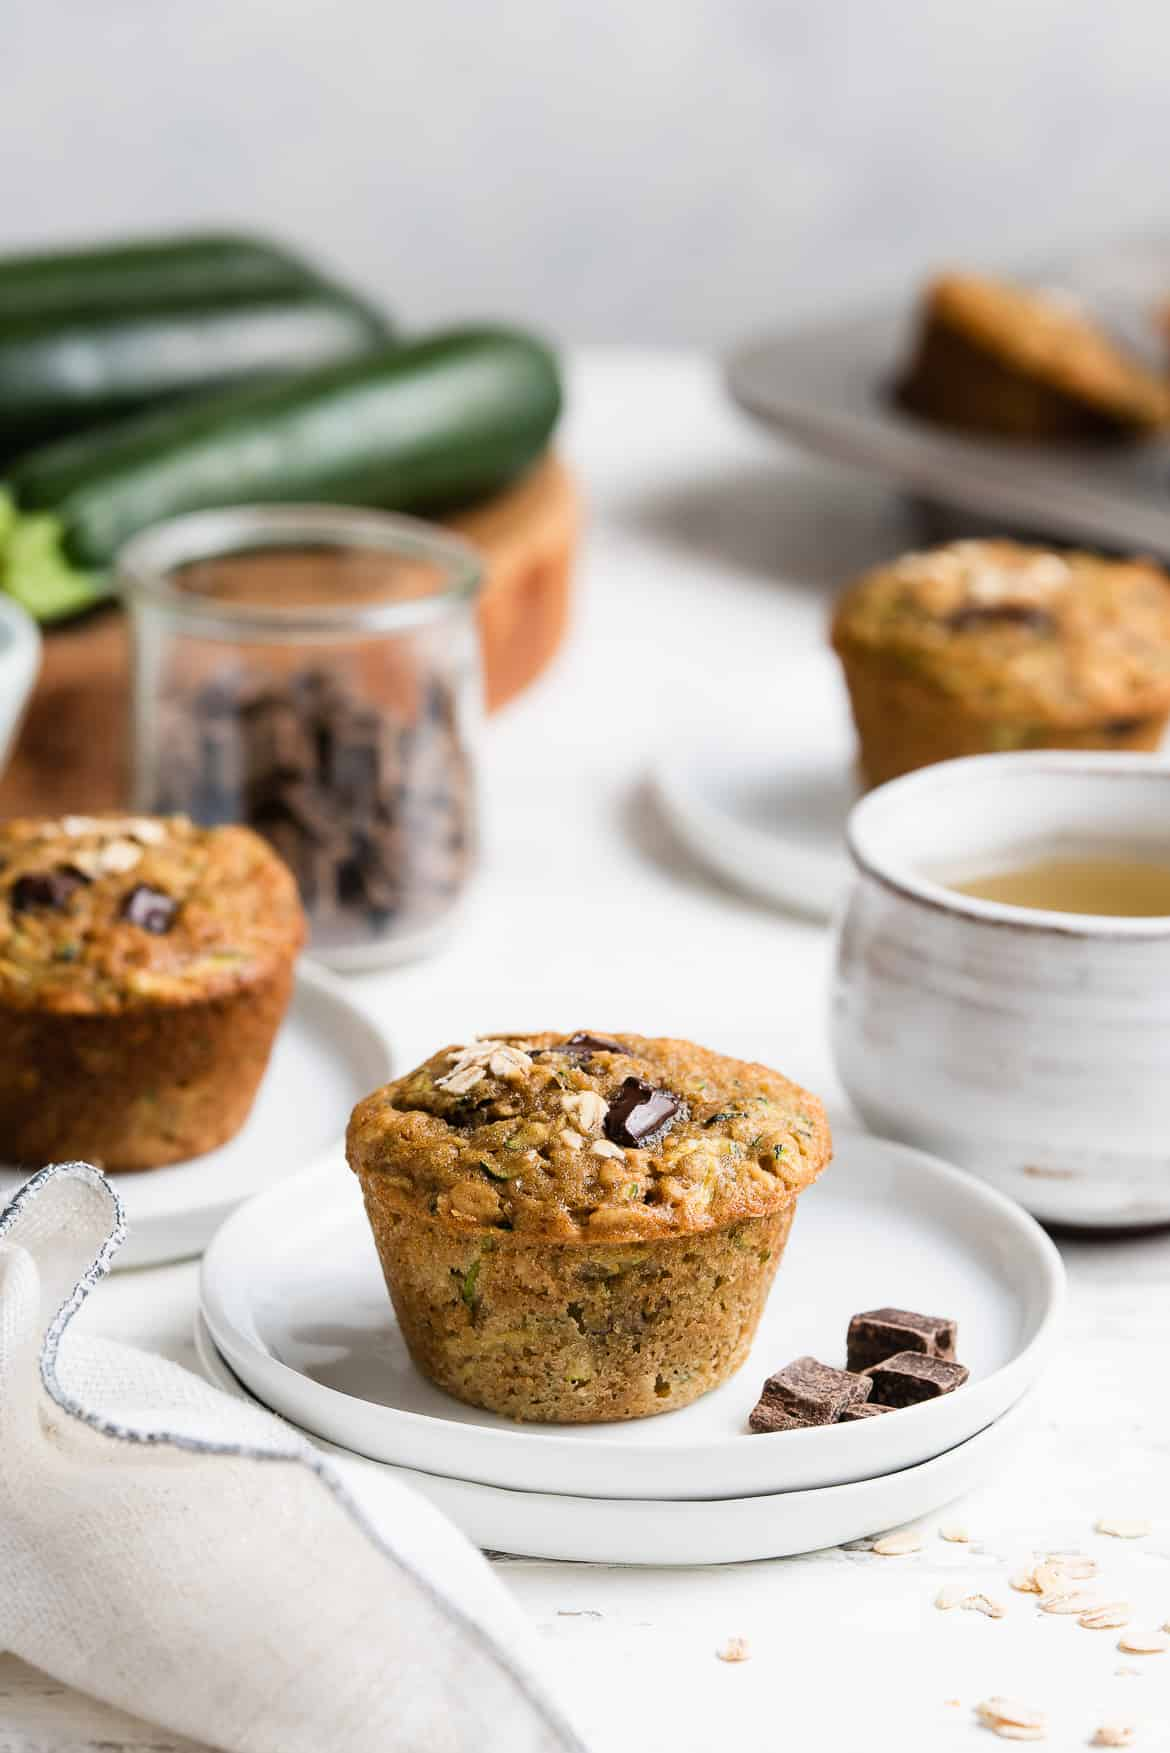 Zucchini Oat Chocolate Chunk Muffins on small white plates with a cup of tea.